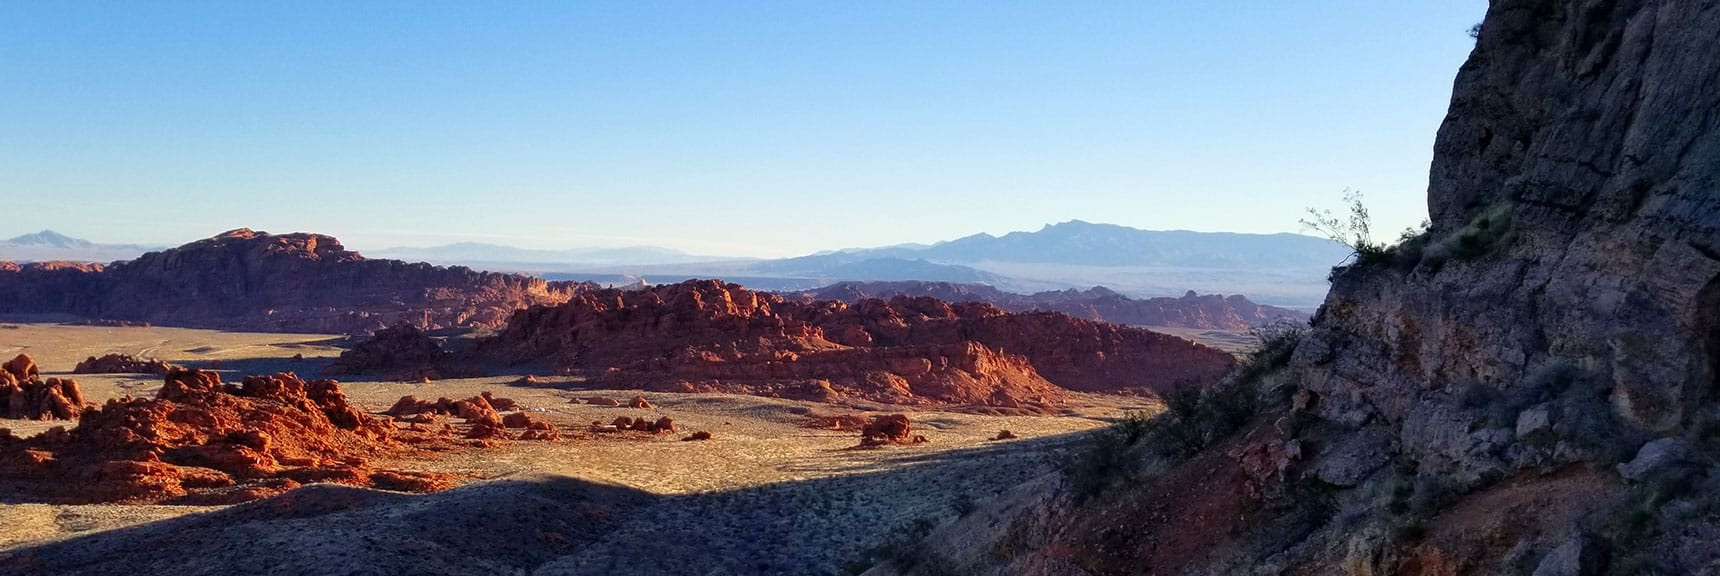 View Back Toward Valley of Fire State Park at Sunrise Before Entering the Muddy Mountains Wilderness, Nevada